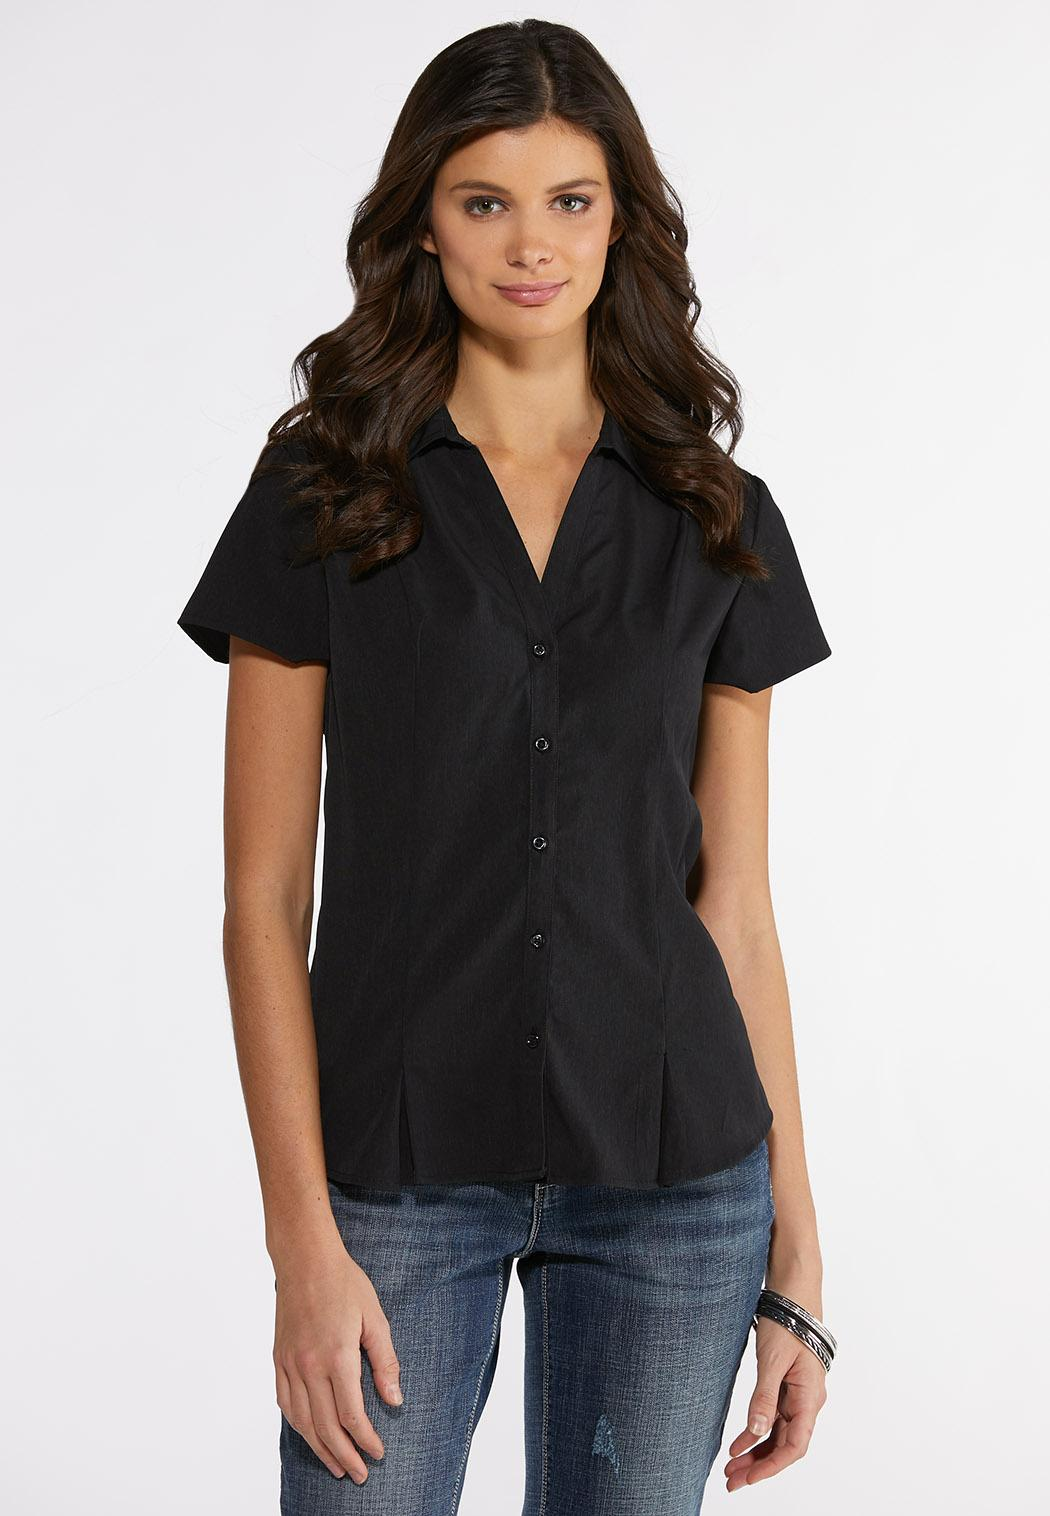 64a4b1af731de Short Sleeve Pleated Shirt Shirts   Blouses Cato Fashions